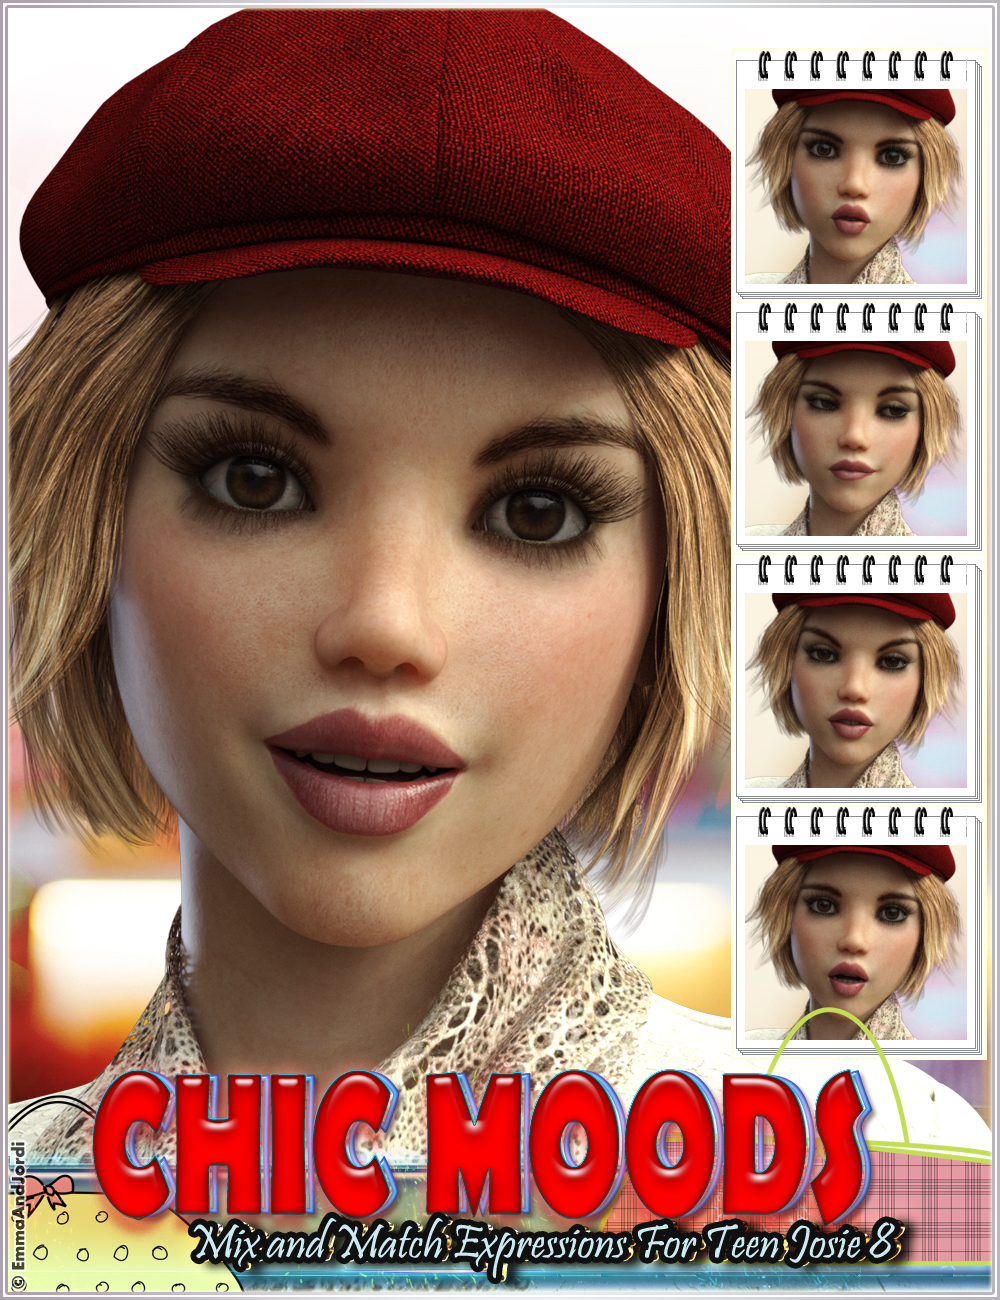 Chic Moods Mix and Match Expressions for Teen Josie 8 and Genesis 8 Female(s) by: EmmaAndJordi, 3D Models by Daz 3D